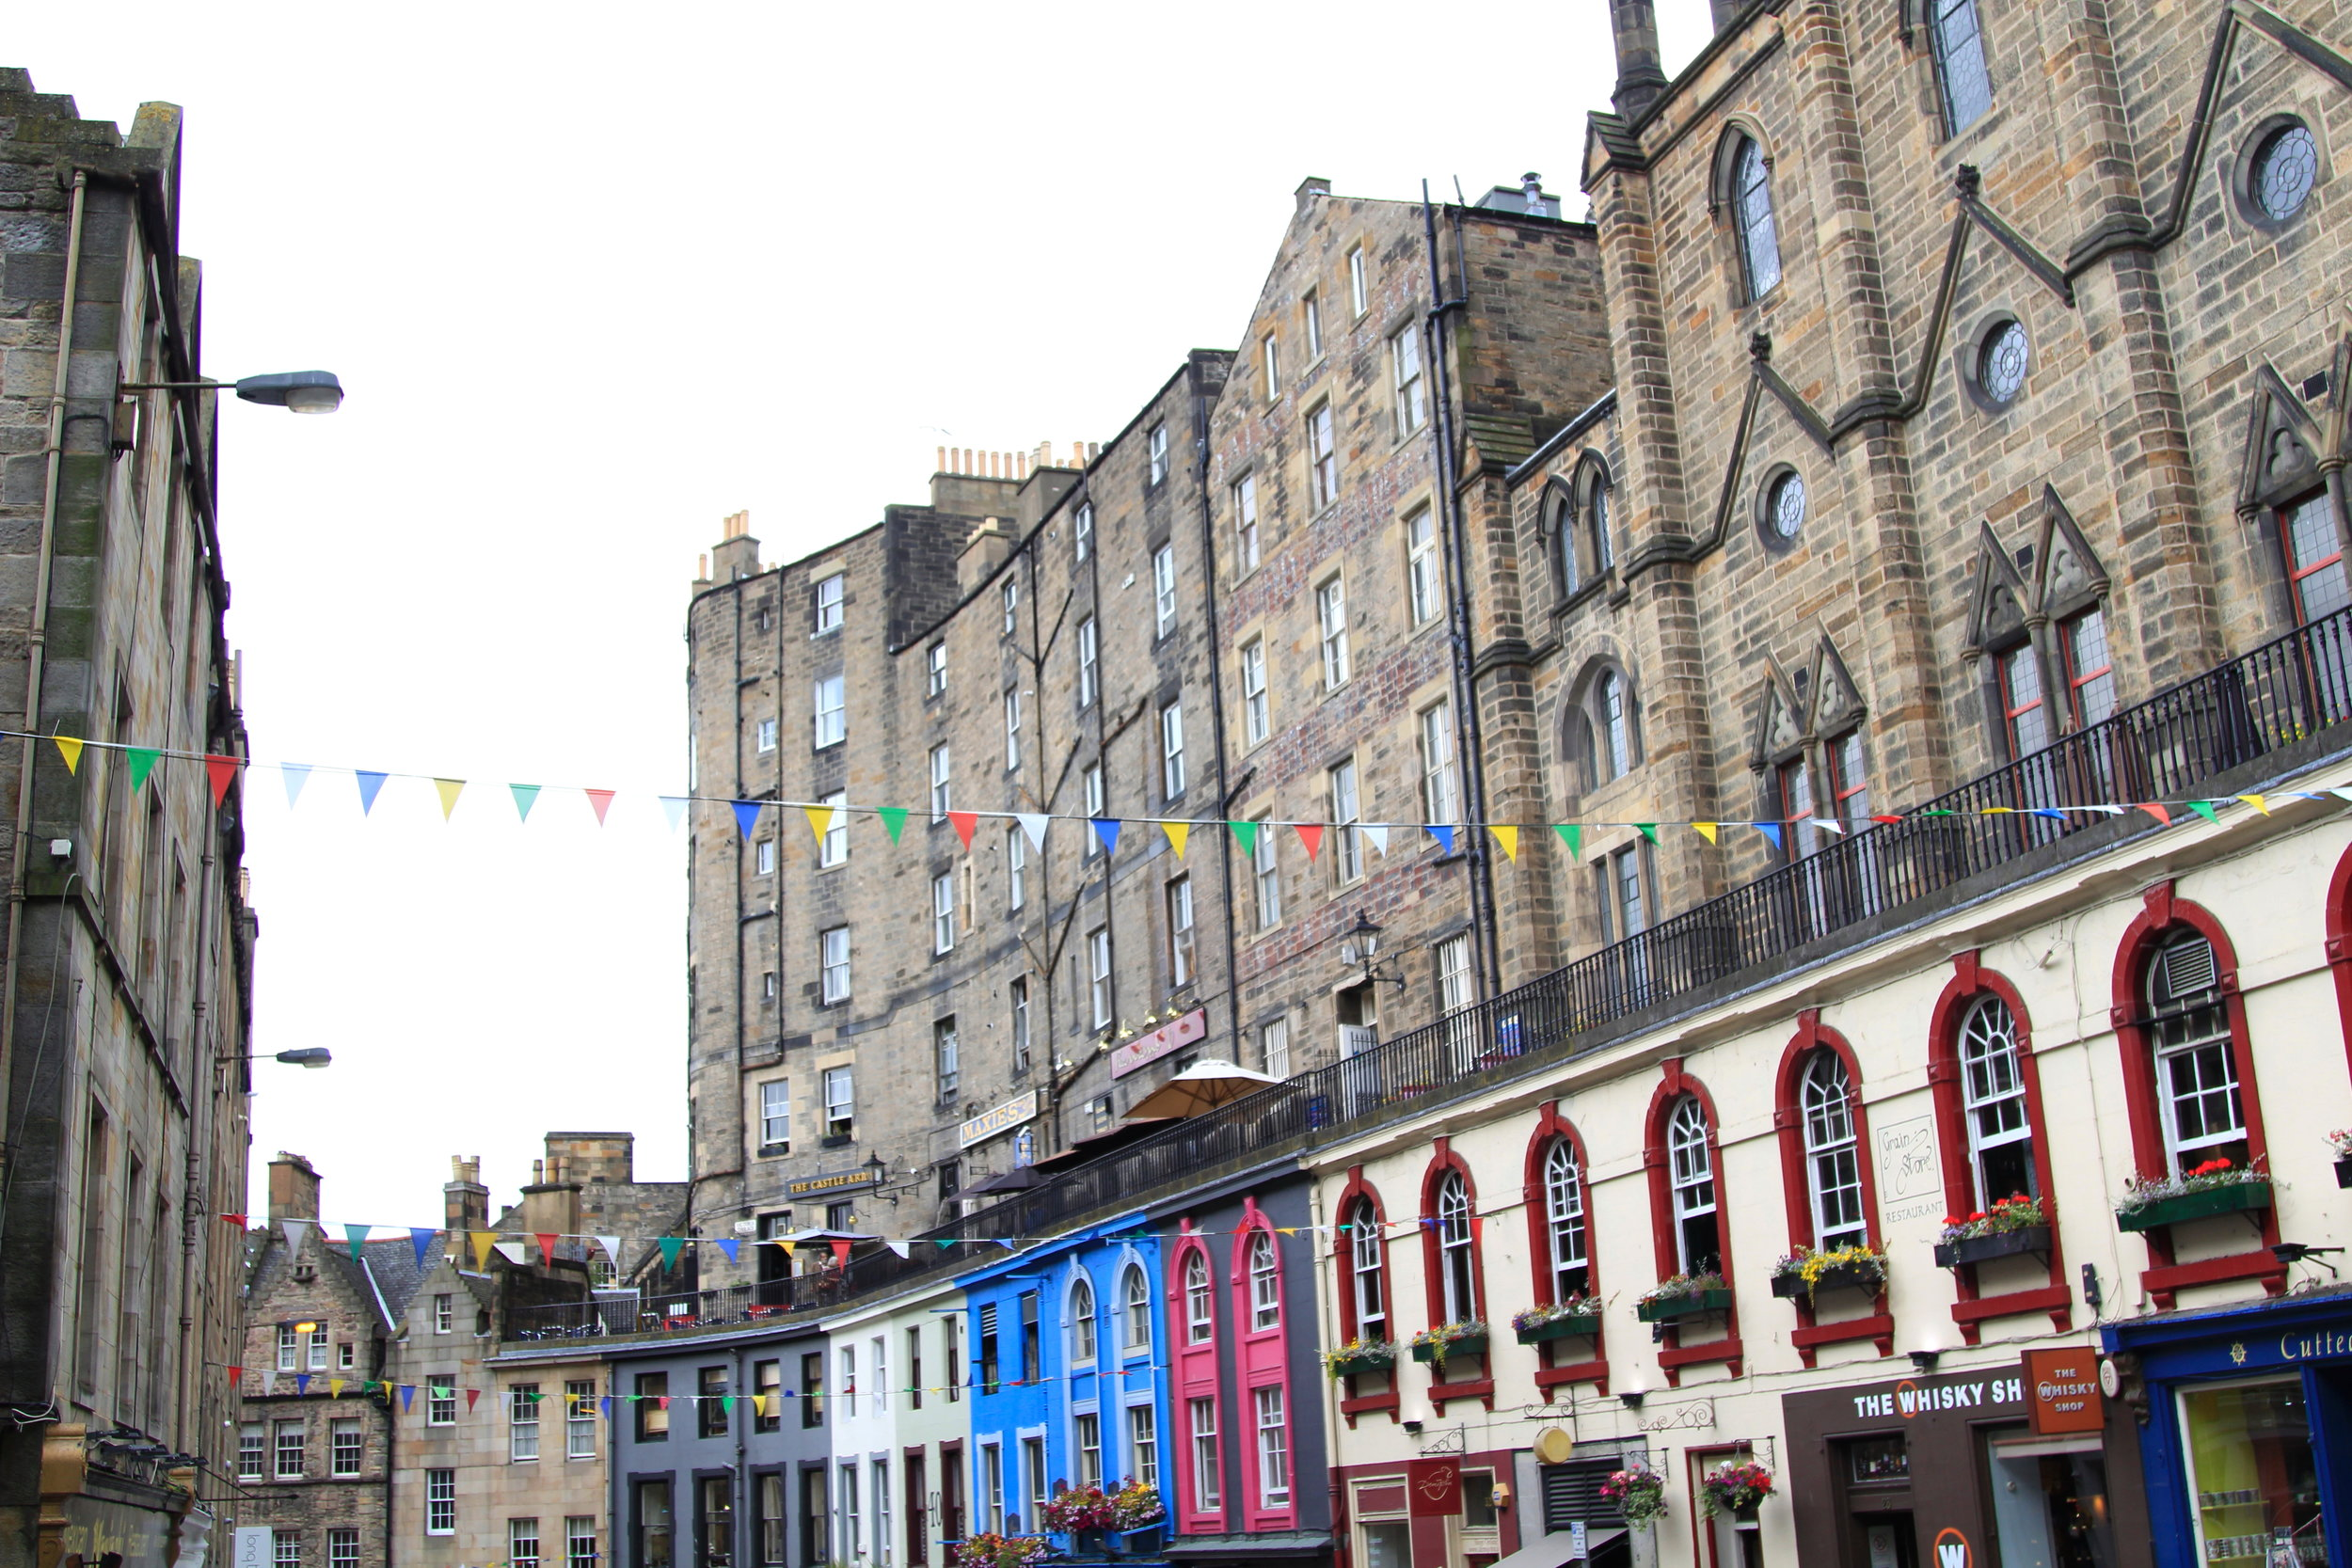 Victoria Street, Edinburgh. Harry Potter inspiration!